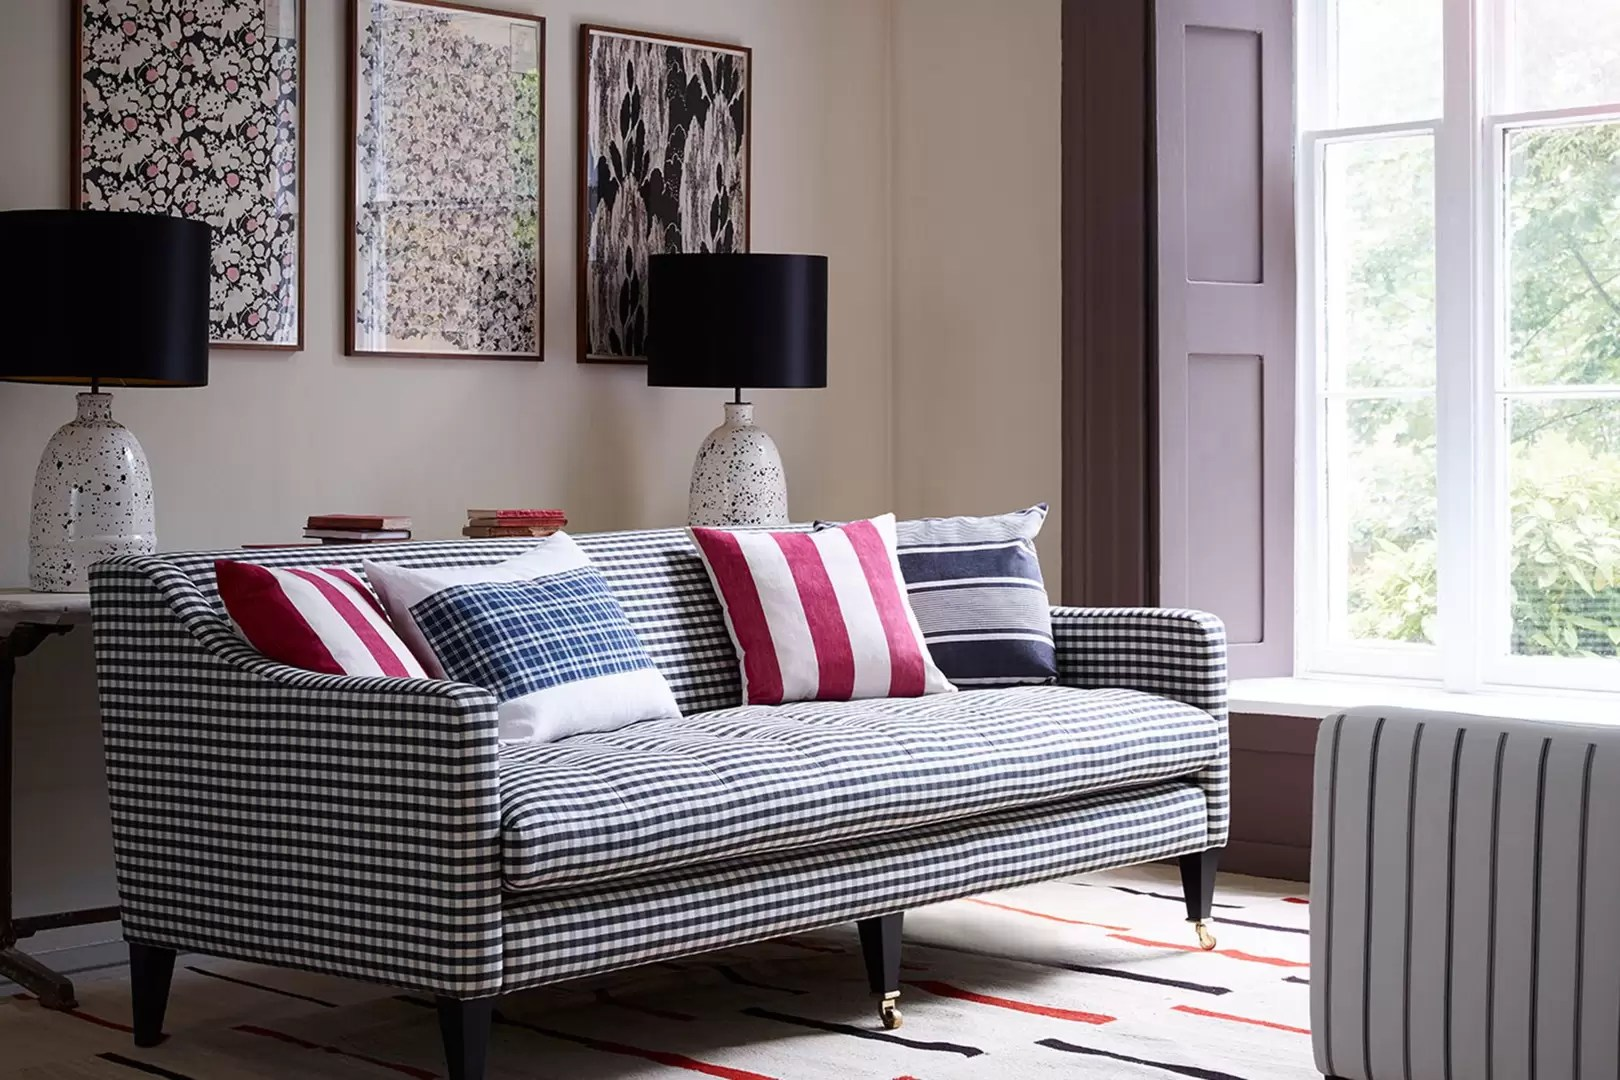 Garden Furniture Corner Sofa Ebay House Garden Furniture Collection With Arlo Jacob House Garden